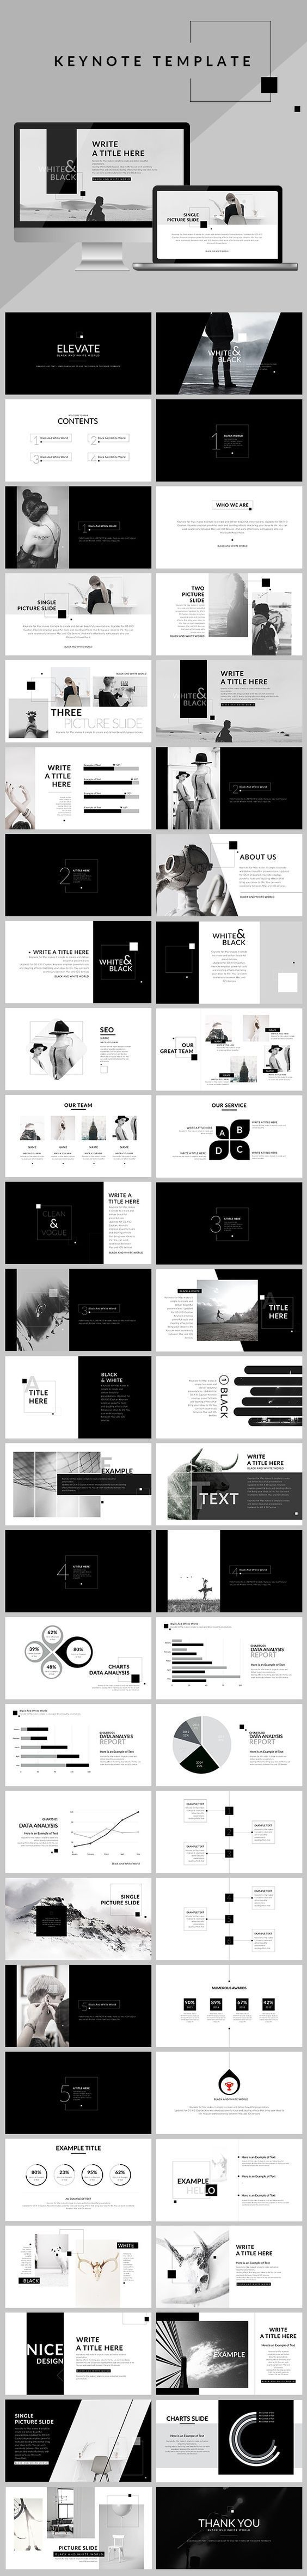 Black & White - Clean Keynote Template #minimal #marketing | Design ...